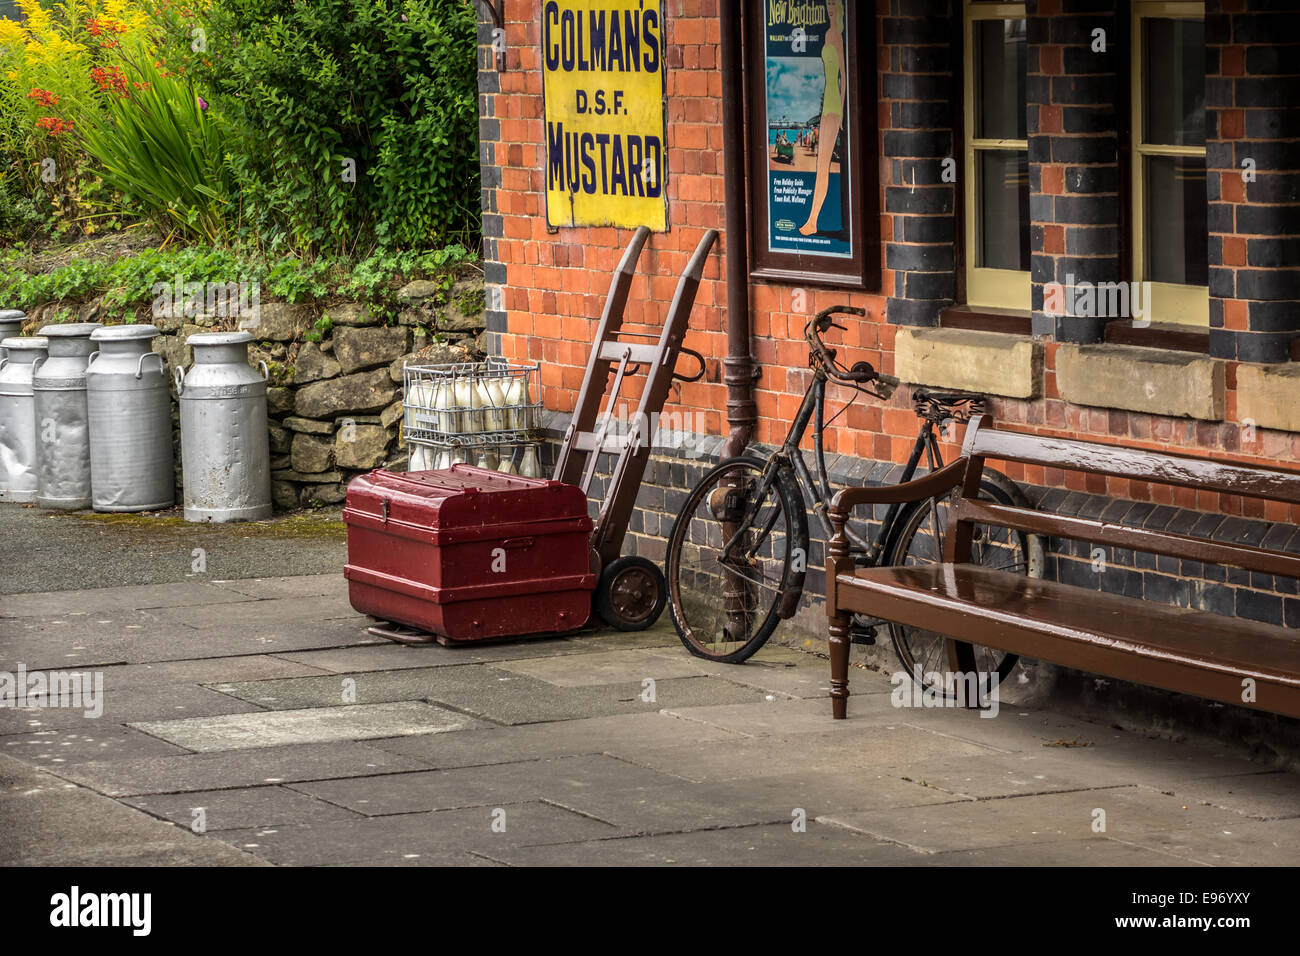 An Old Vintage Railway Station Platform For Enthusiasts At Llangollen Wales